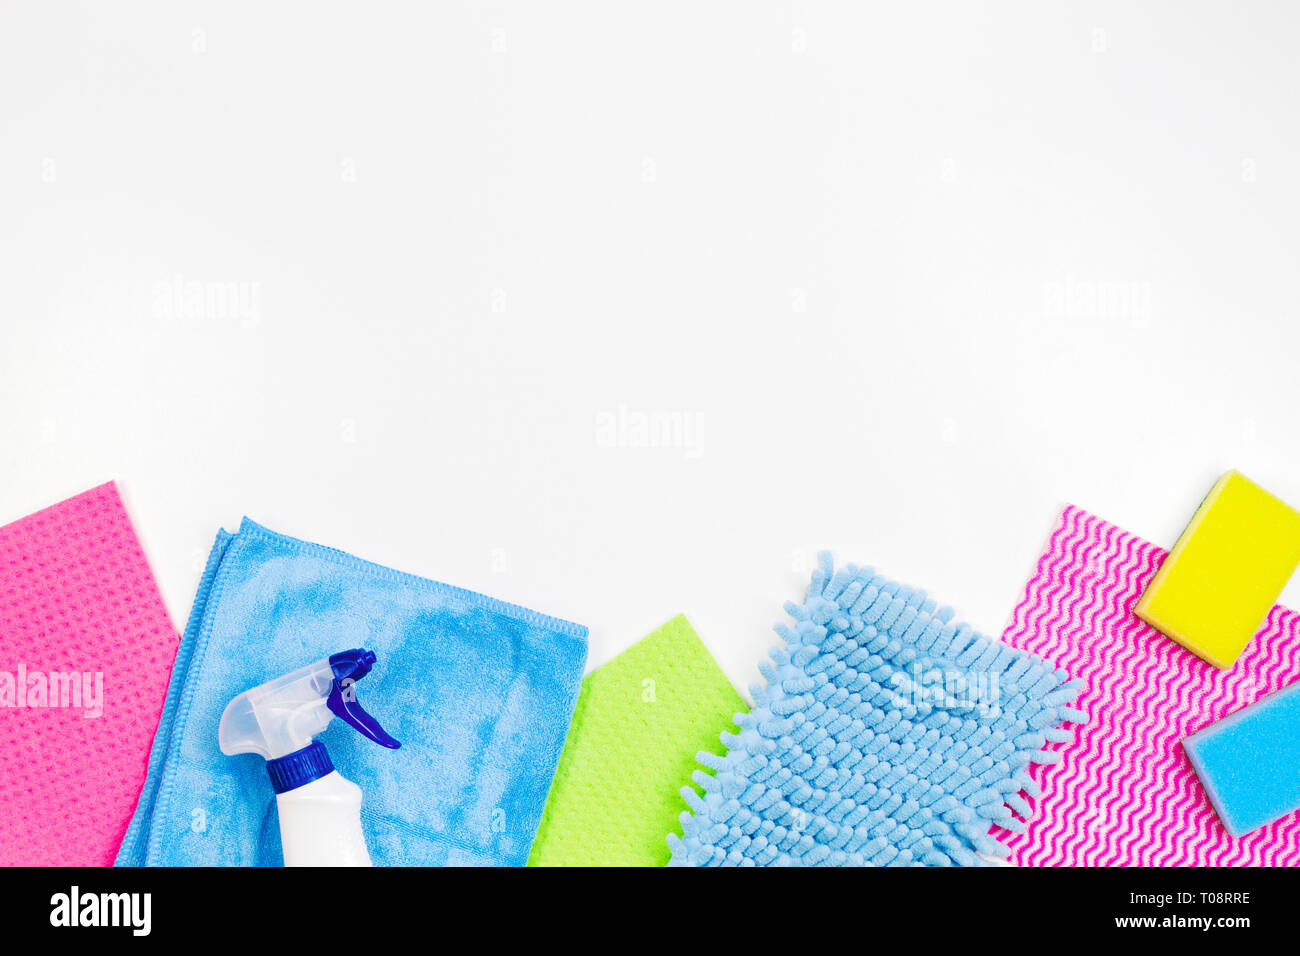 Housework, housekeeping, household, cleaning service concept. Bottle of detergent, rags and sponges on white background - Stock Image